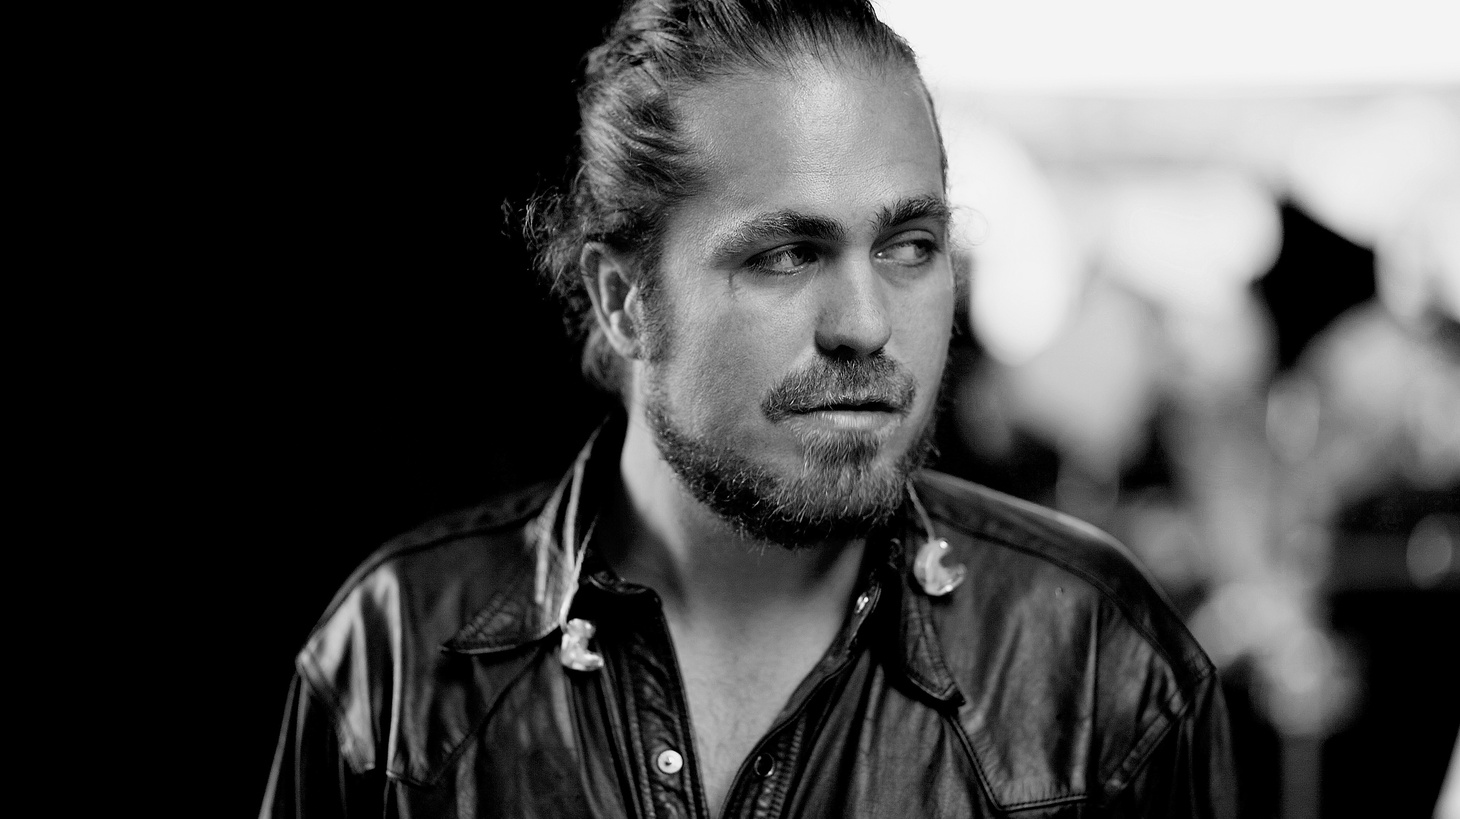 Citizen Cope has finally announced his first album in 7 years, Heroin and Helicopters, dropping in March.